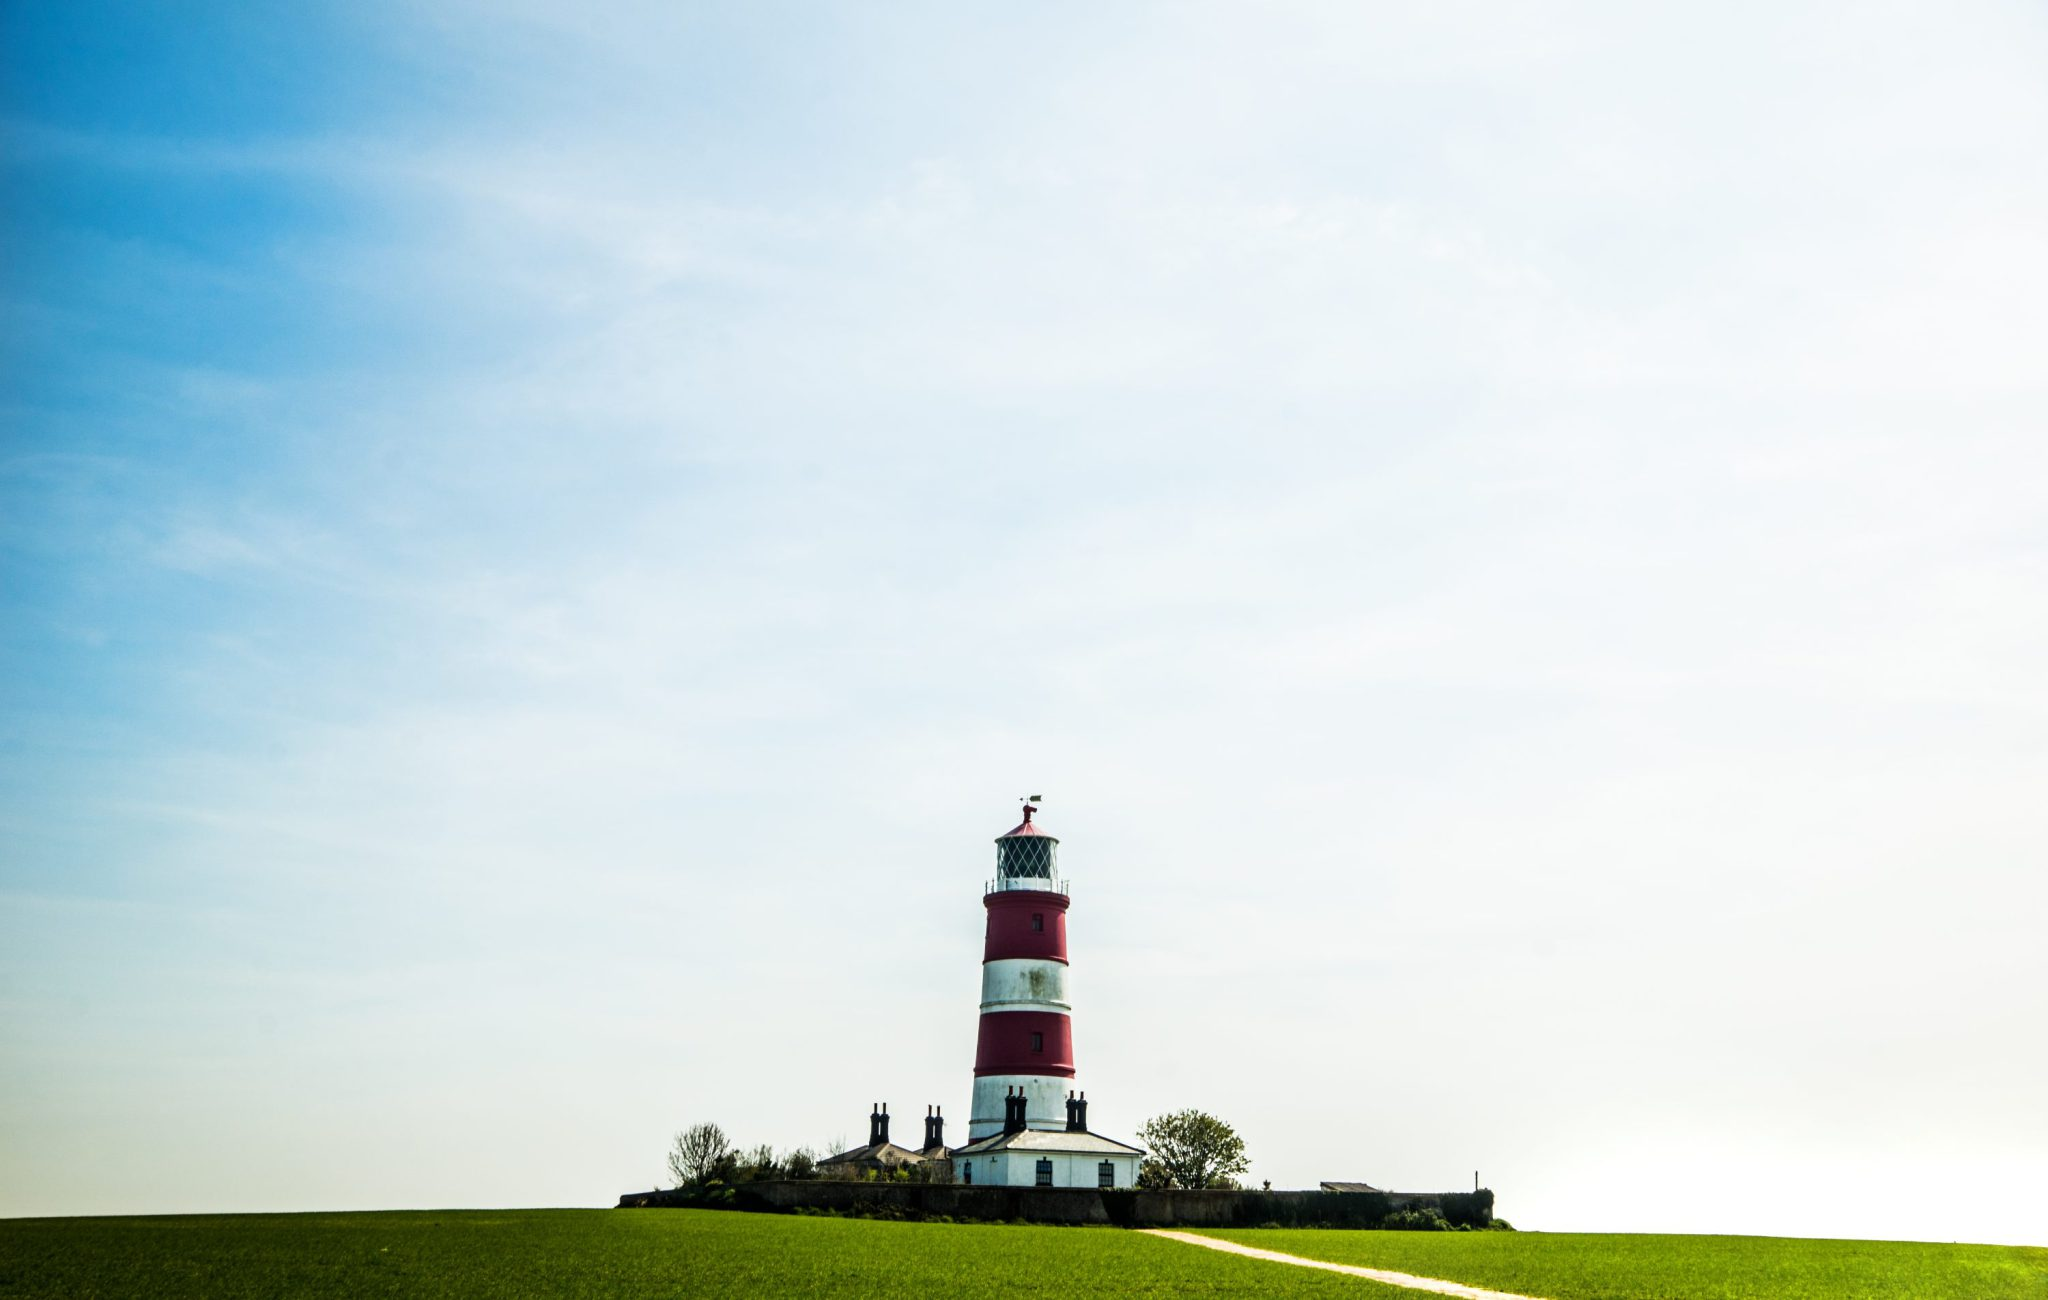 Creative lighthouse photography captured at Happisburgh beach, Norfolk